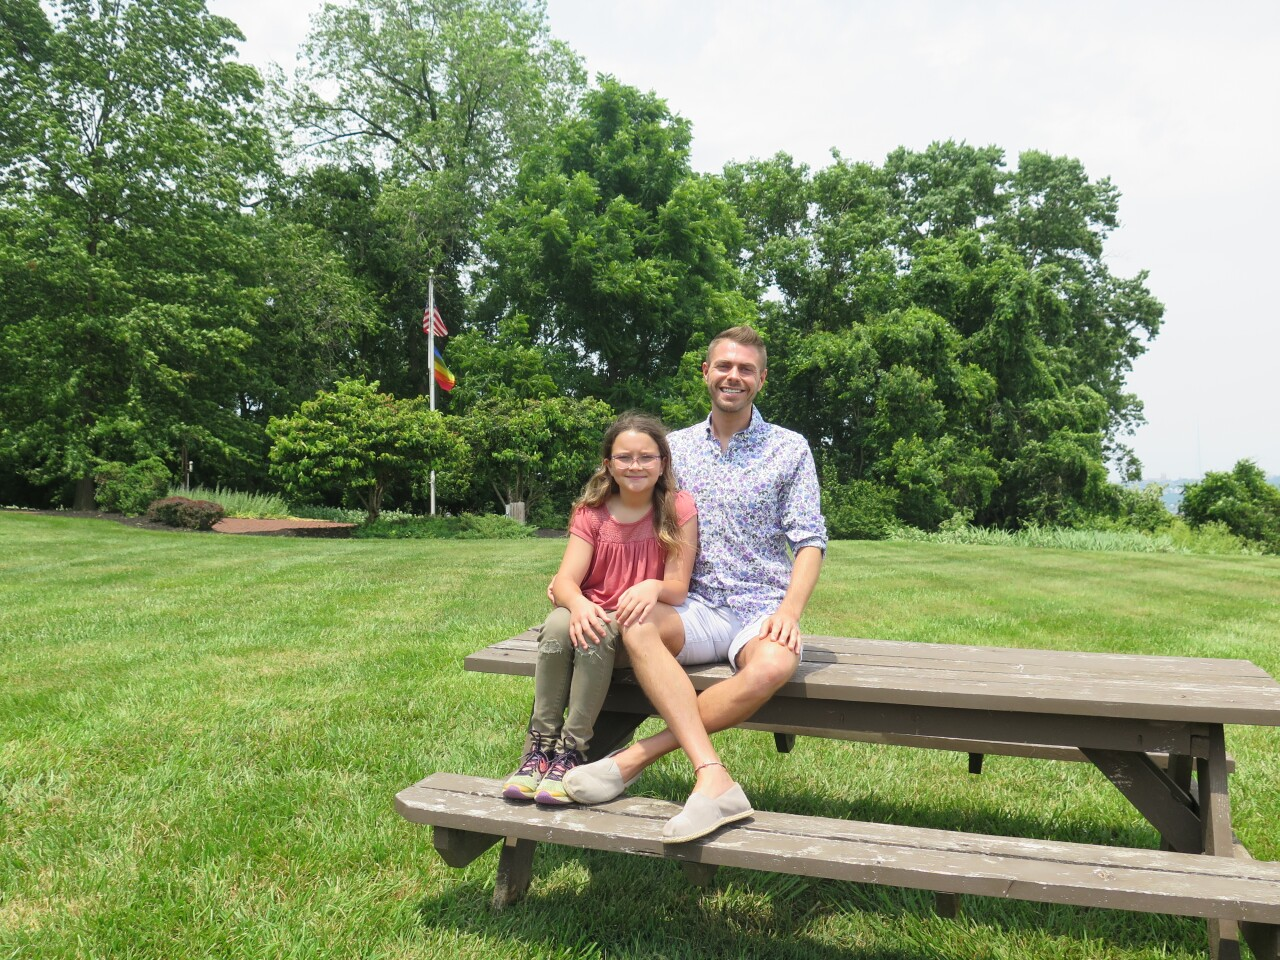 Harper Rae Allen, left, and her dad, Ryan Joseph Allen, pose for a portrait outside Children's Home of Northern Kentucky. Two flags - an American flag and a Pride flag - flutter on a flagpole behind them.